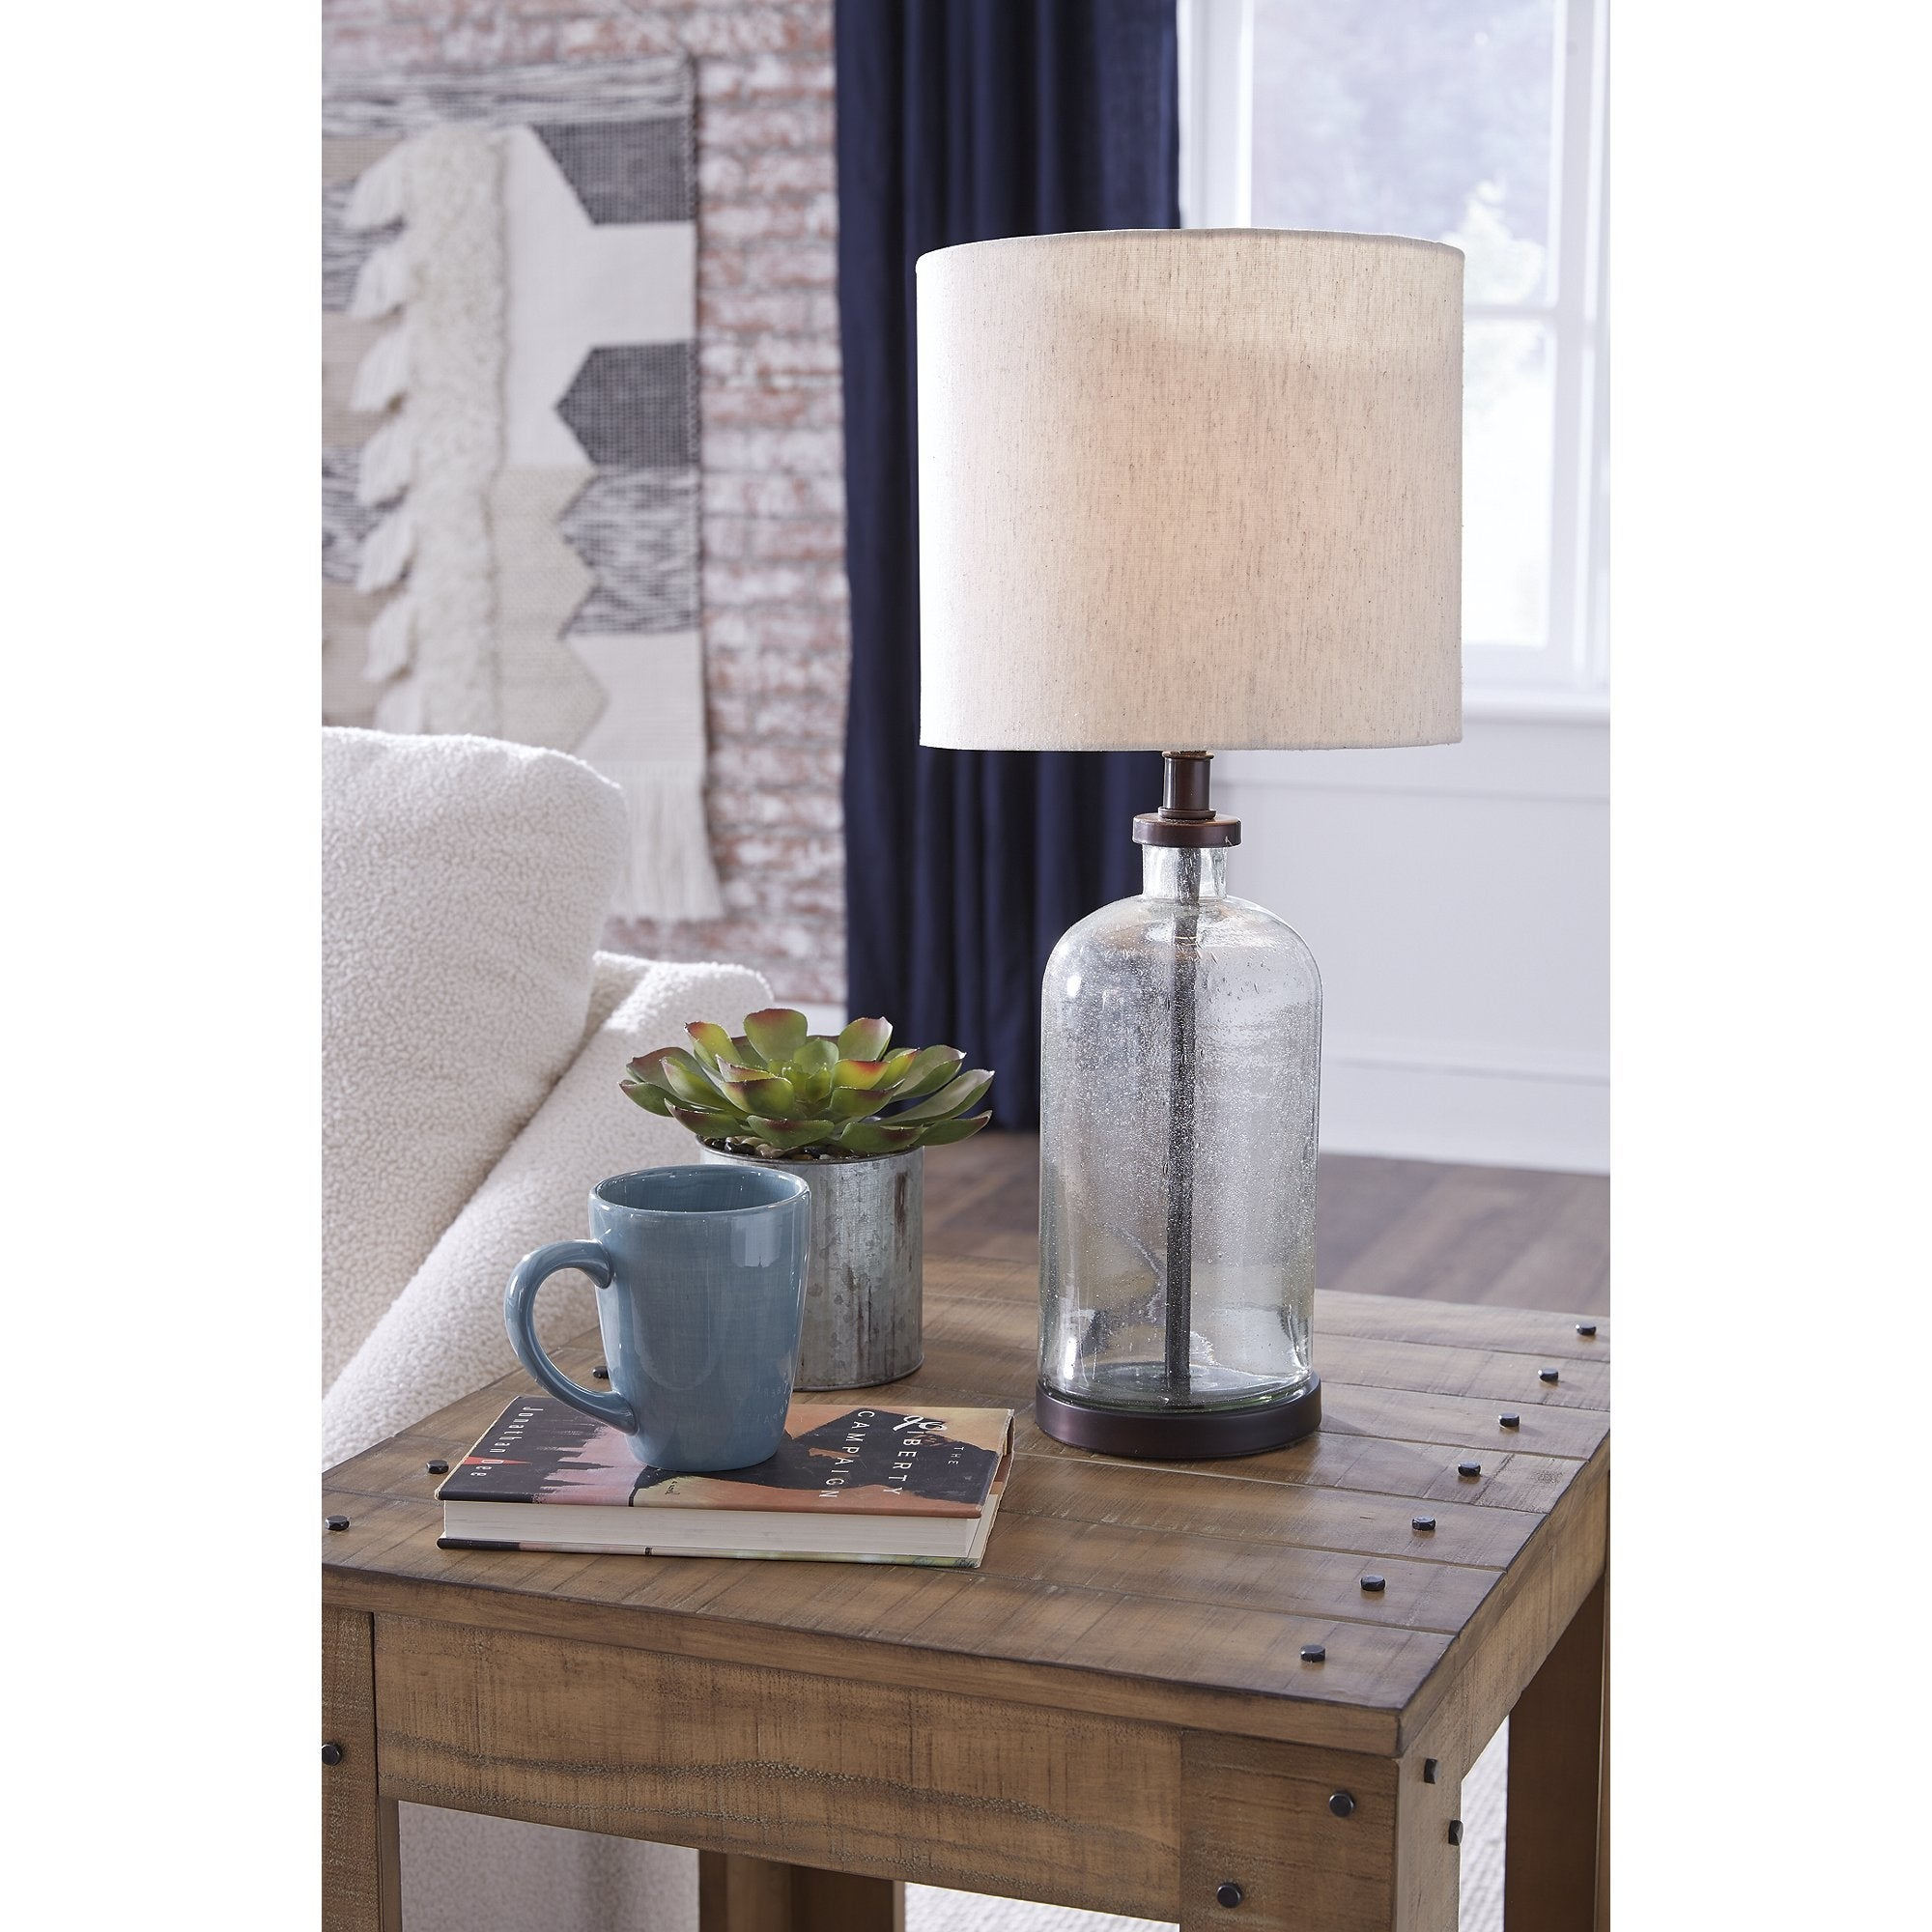 Bandile Modern Farmhouse Glass Table Lamp 10 W X 10 D X 22 H Overstock 31648729